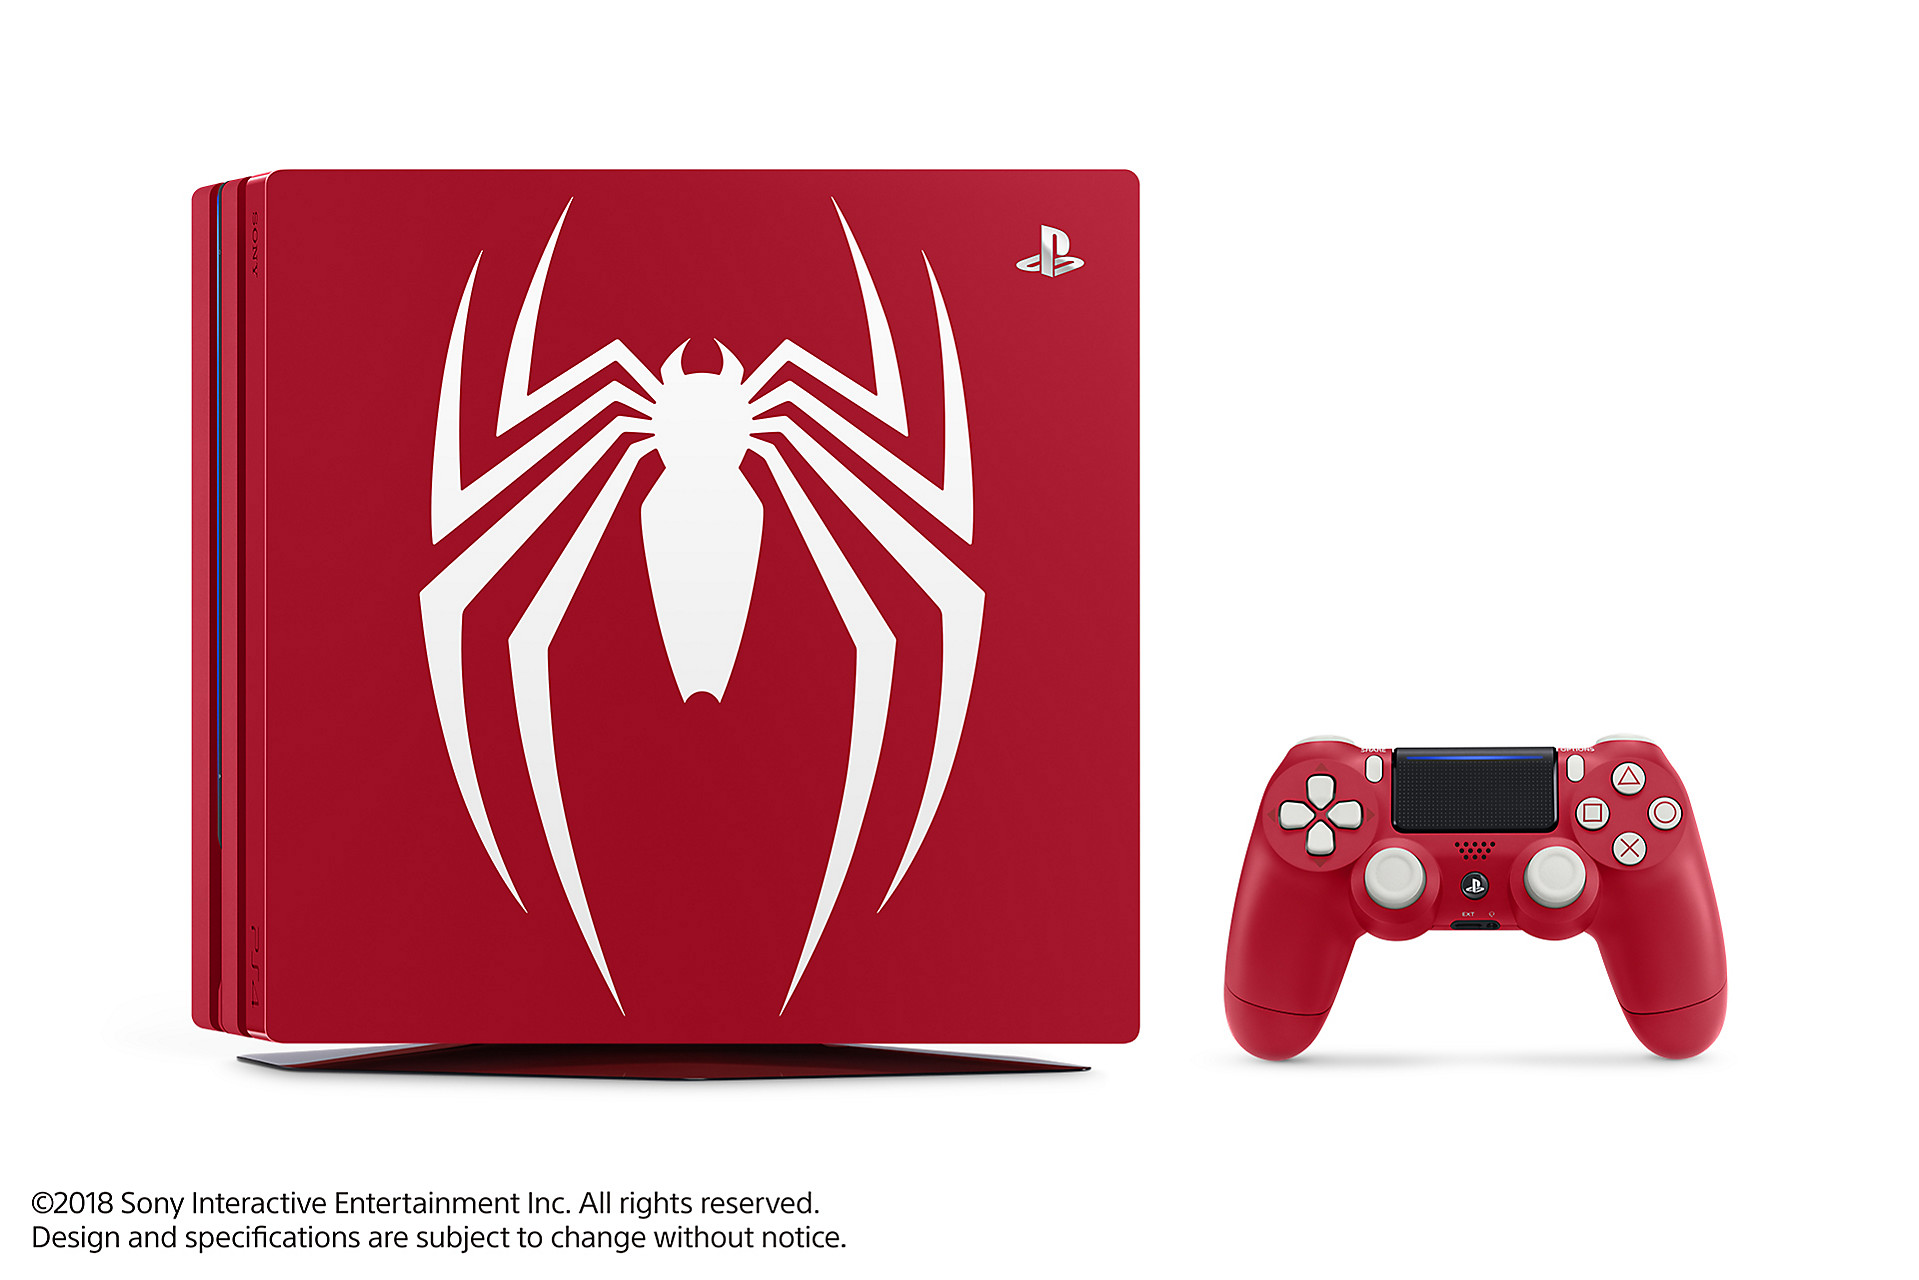 The Spider-Man PS4 Pro bundle splashes the white logo across a red console